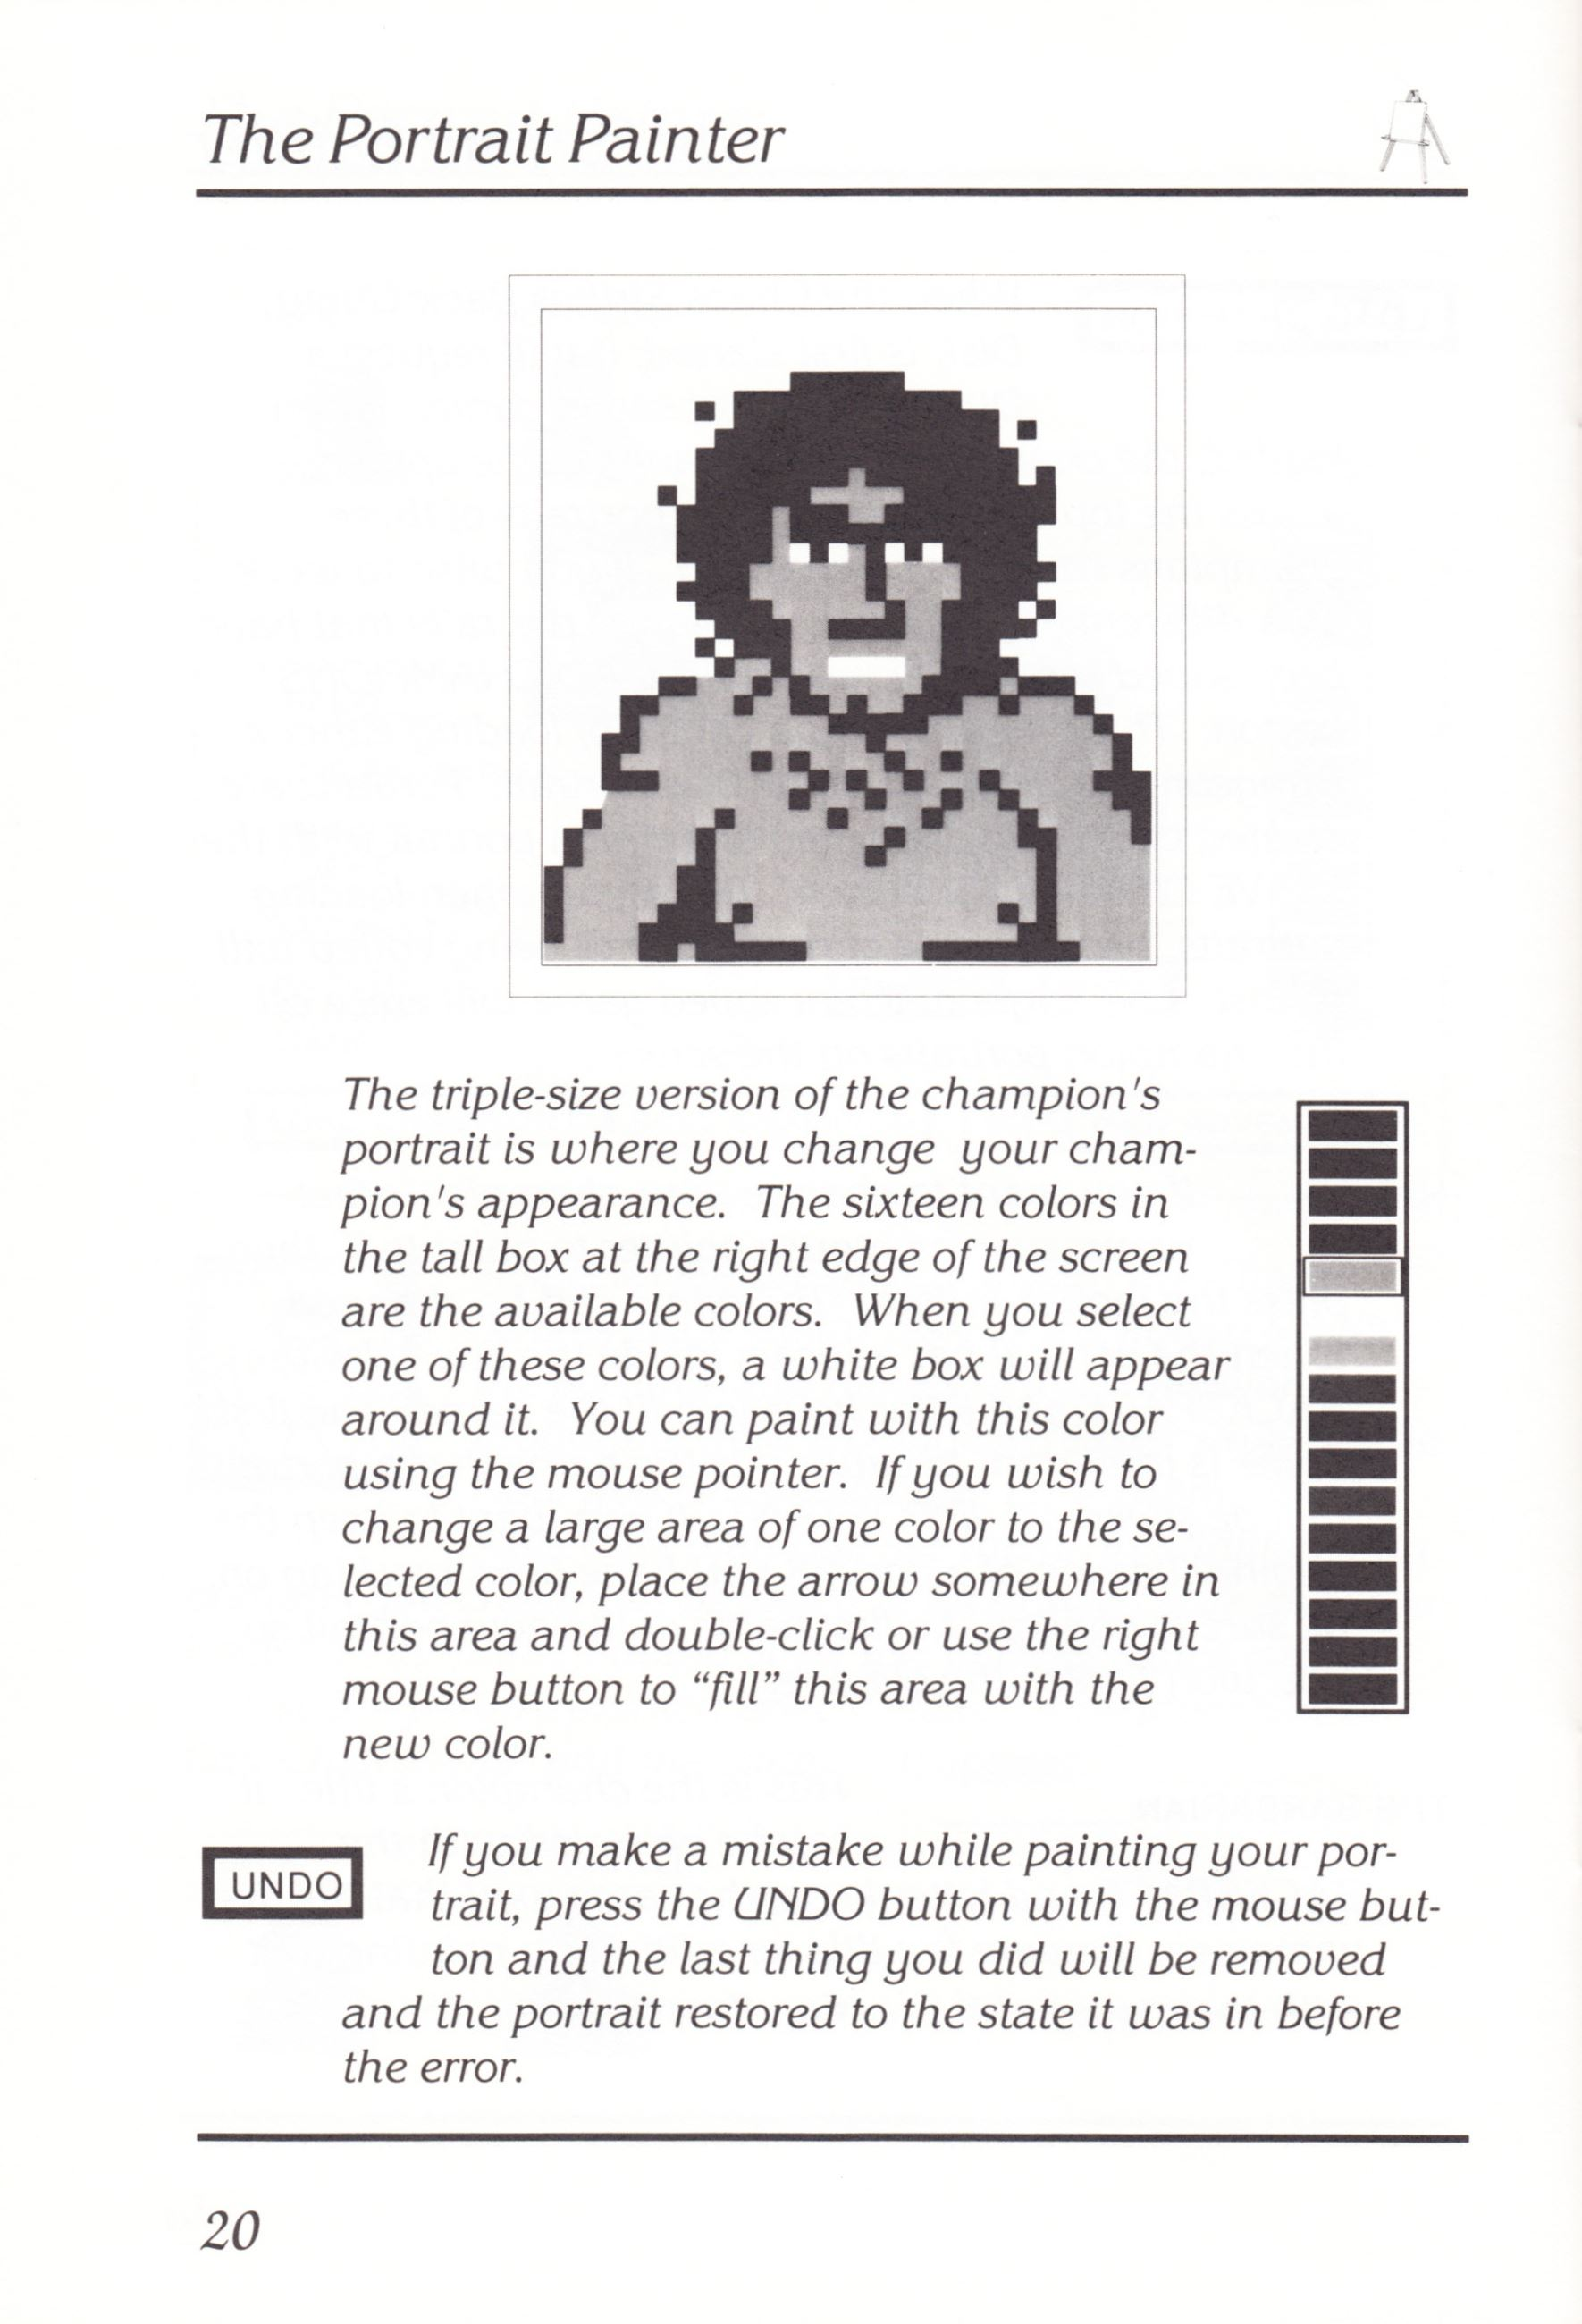 Game - Chaos Strikes Back - UK - Amiga - Manual - Page 022 - Scan